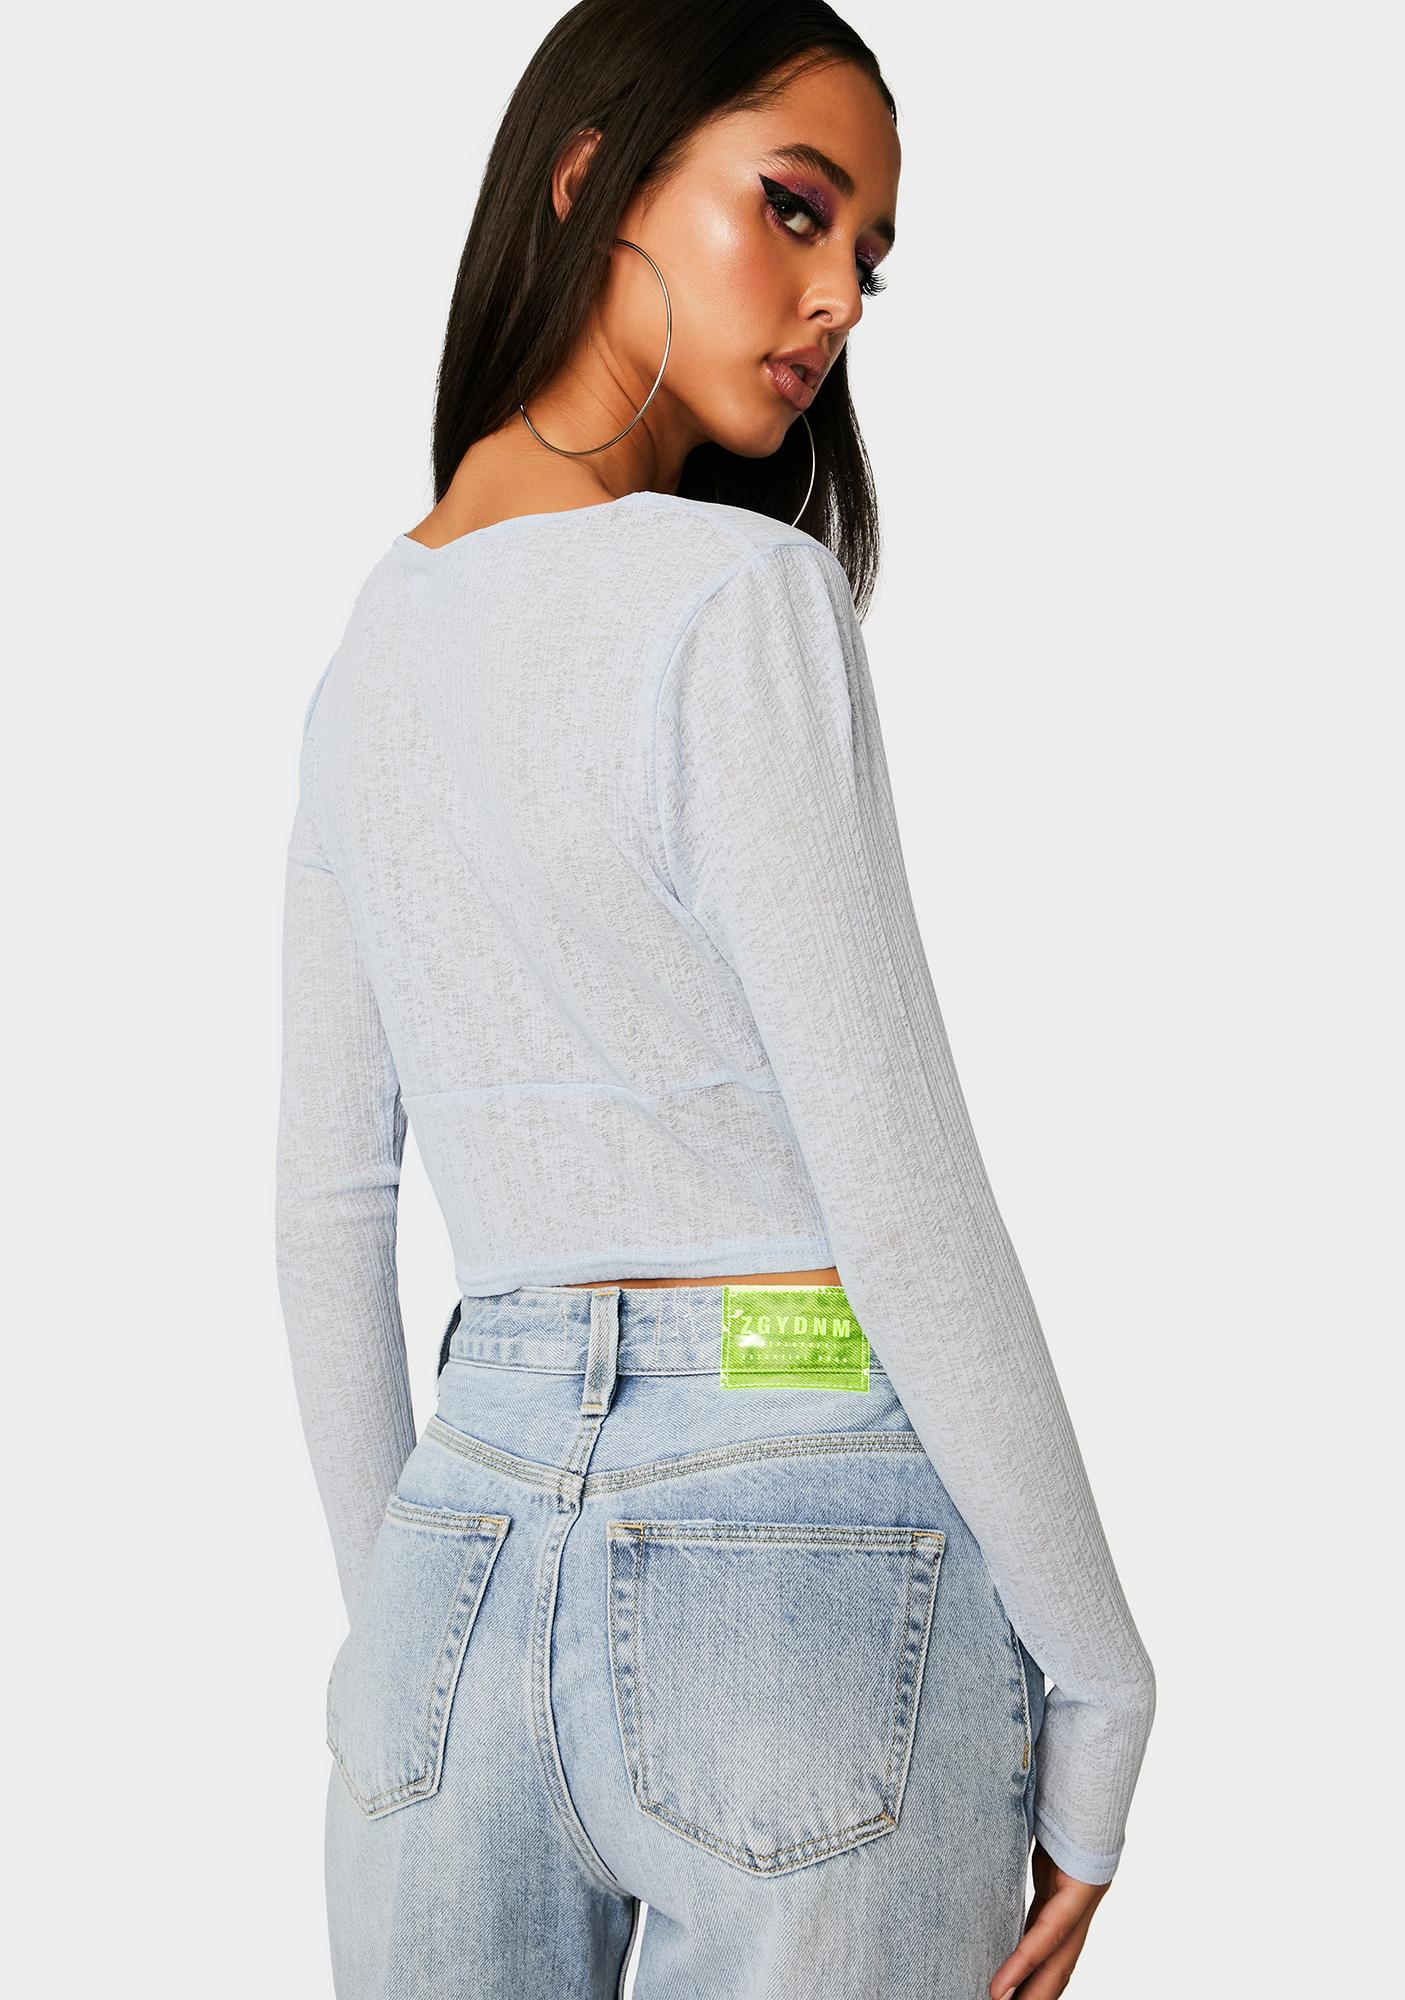 Twiin Out Of Here Mesh Long Sleeve Top